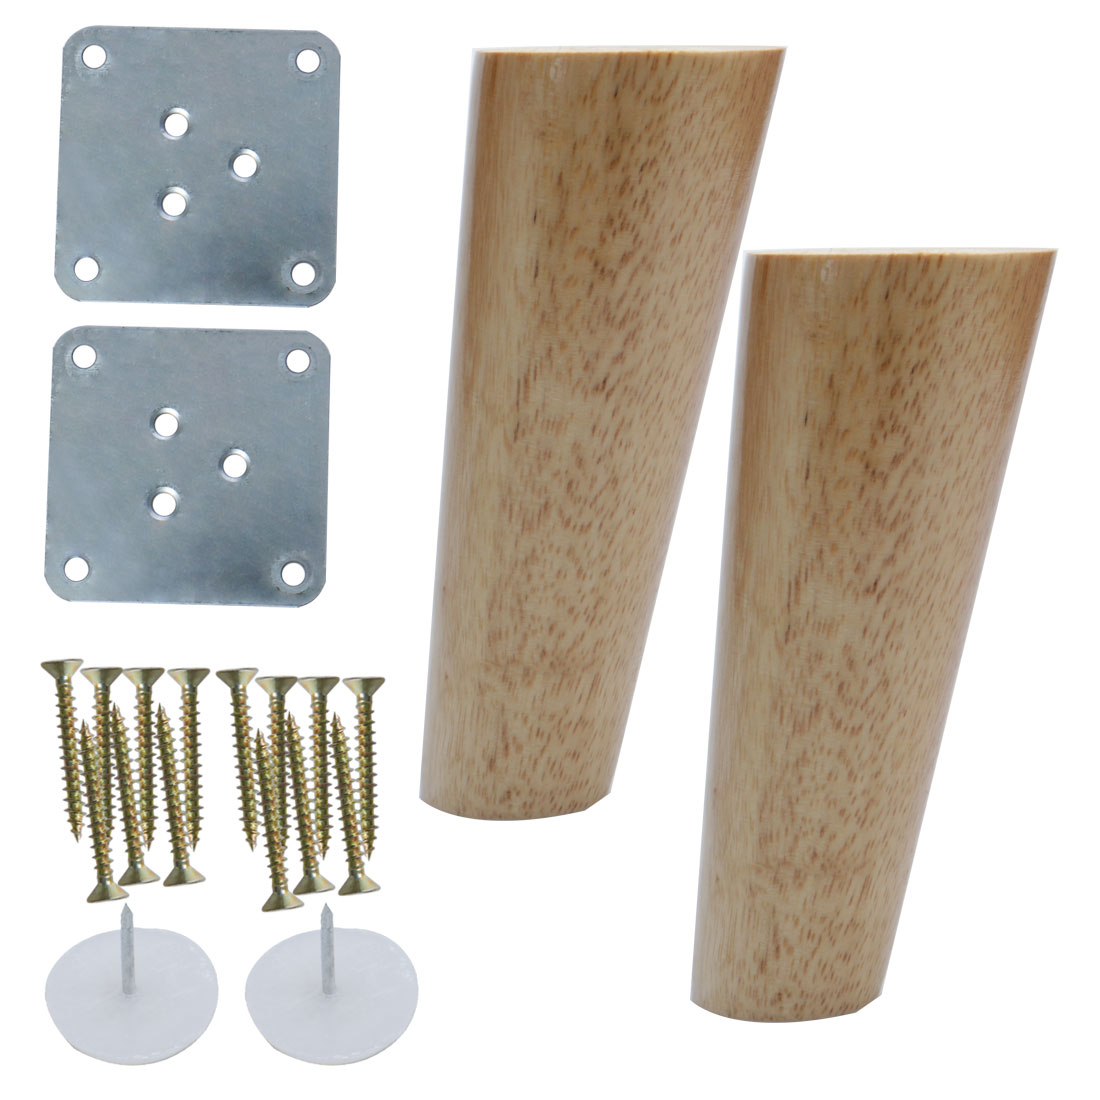 6 Inch Wood Furniture Leg Chair Table Oblique Feet Replacement 2pcs, Wood Color